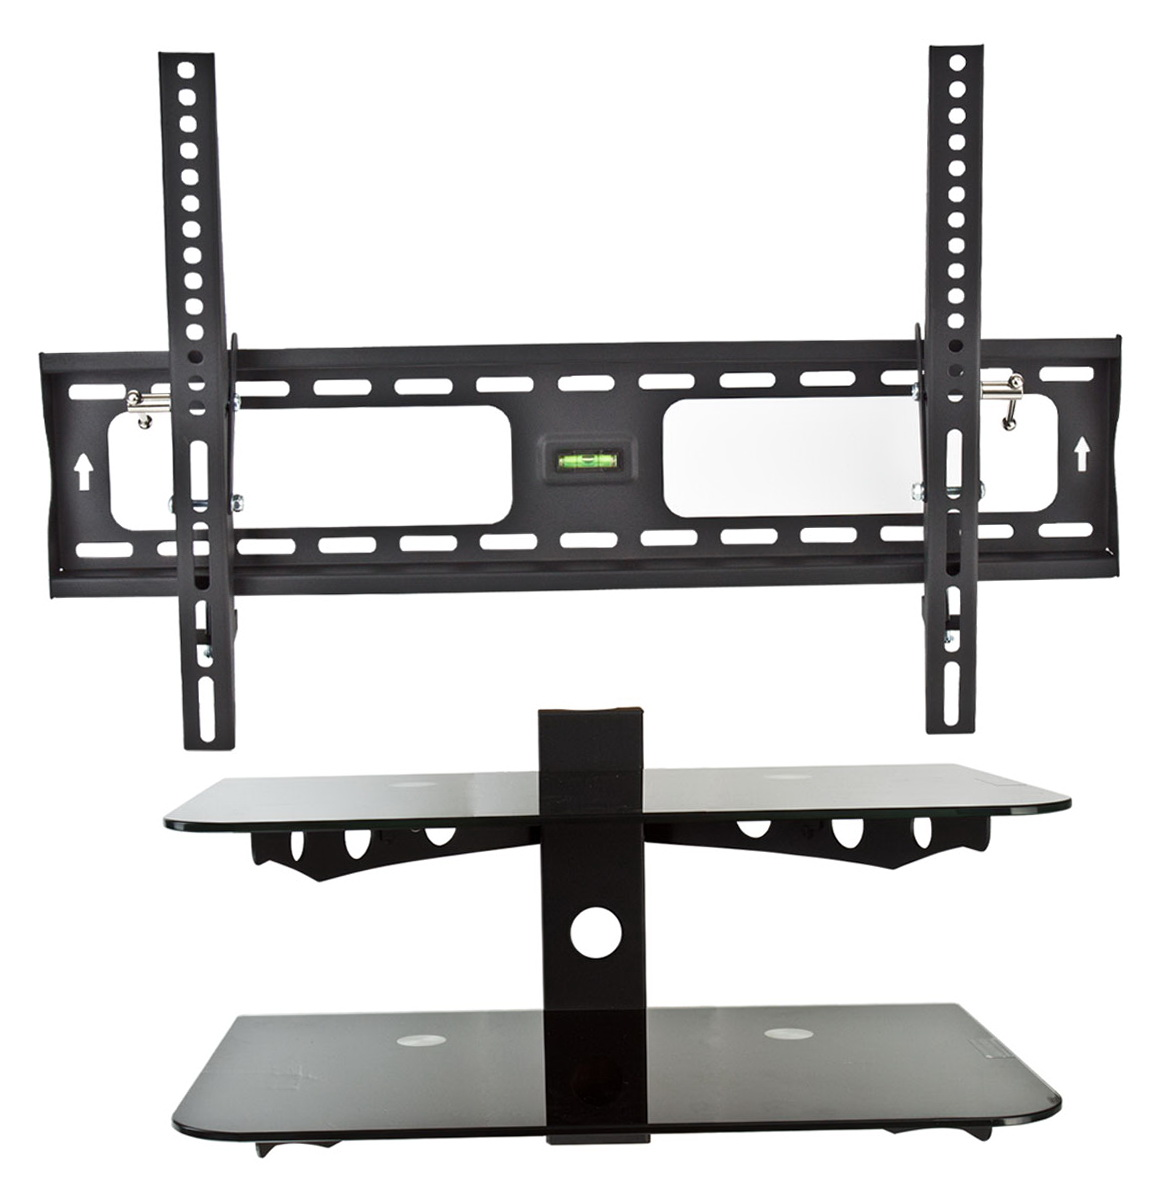 Wall Mount Shelf For Tv Components